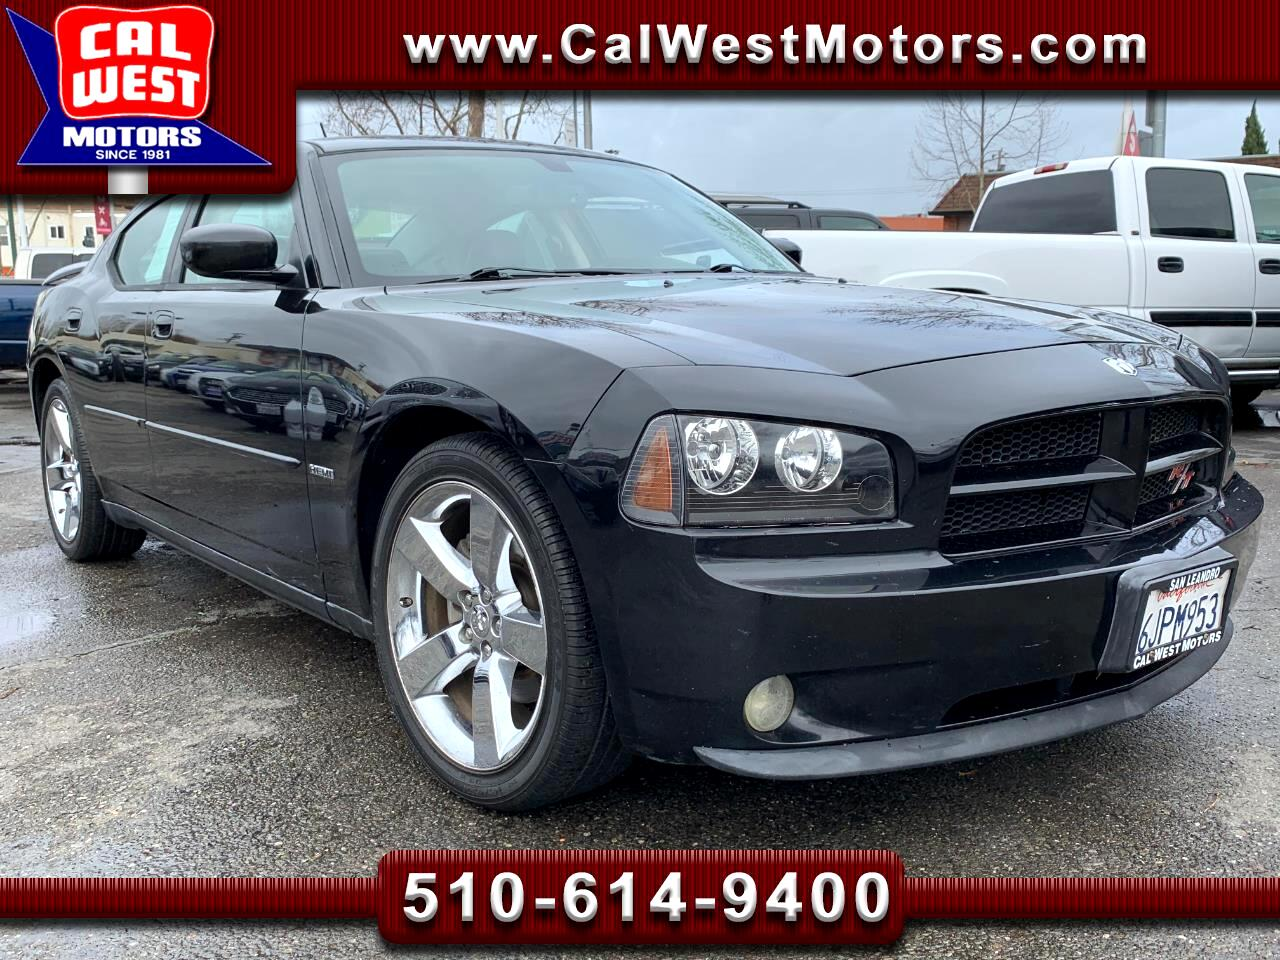 2008 Dodge Charger R/T Performance Leathr NAV 340HP LoMiles VeryClean